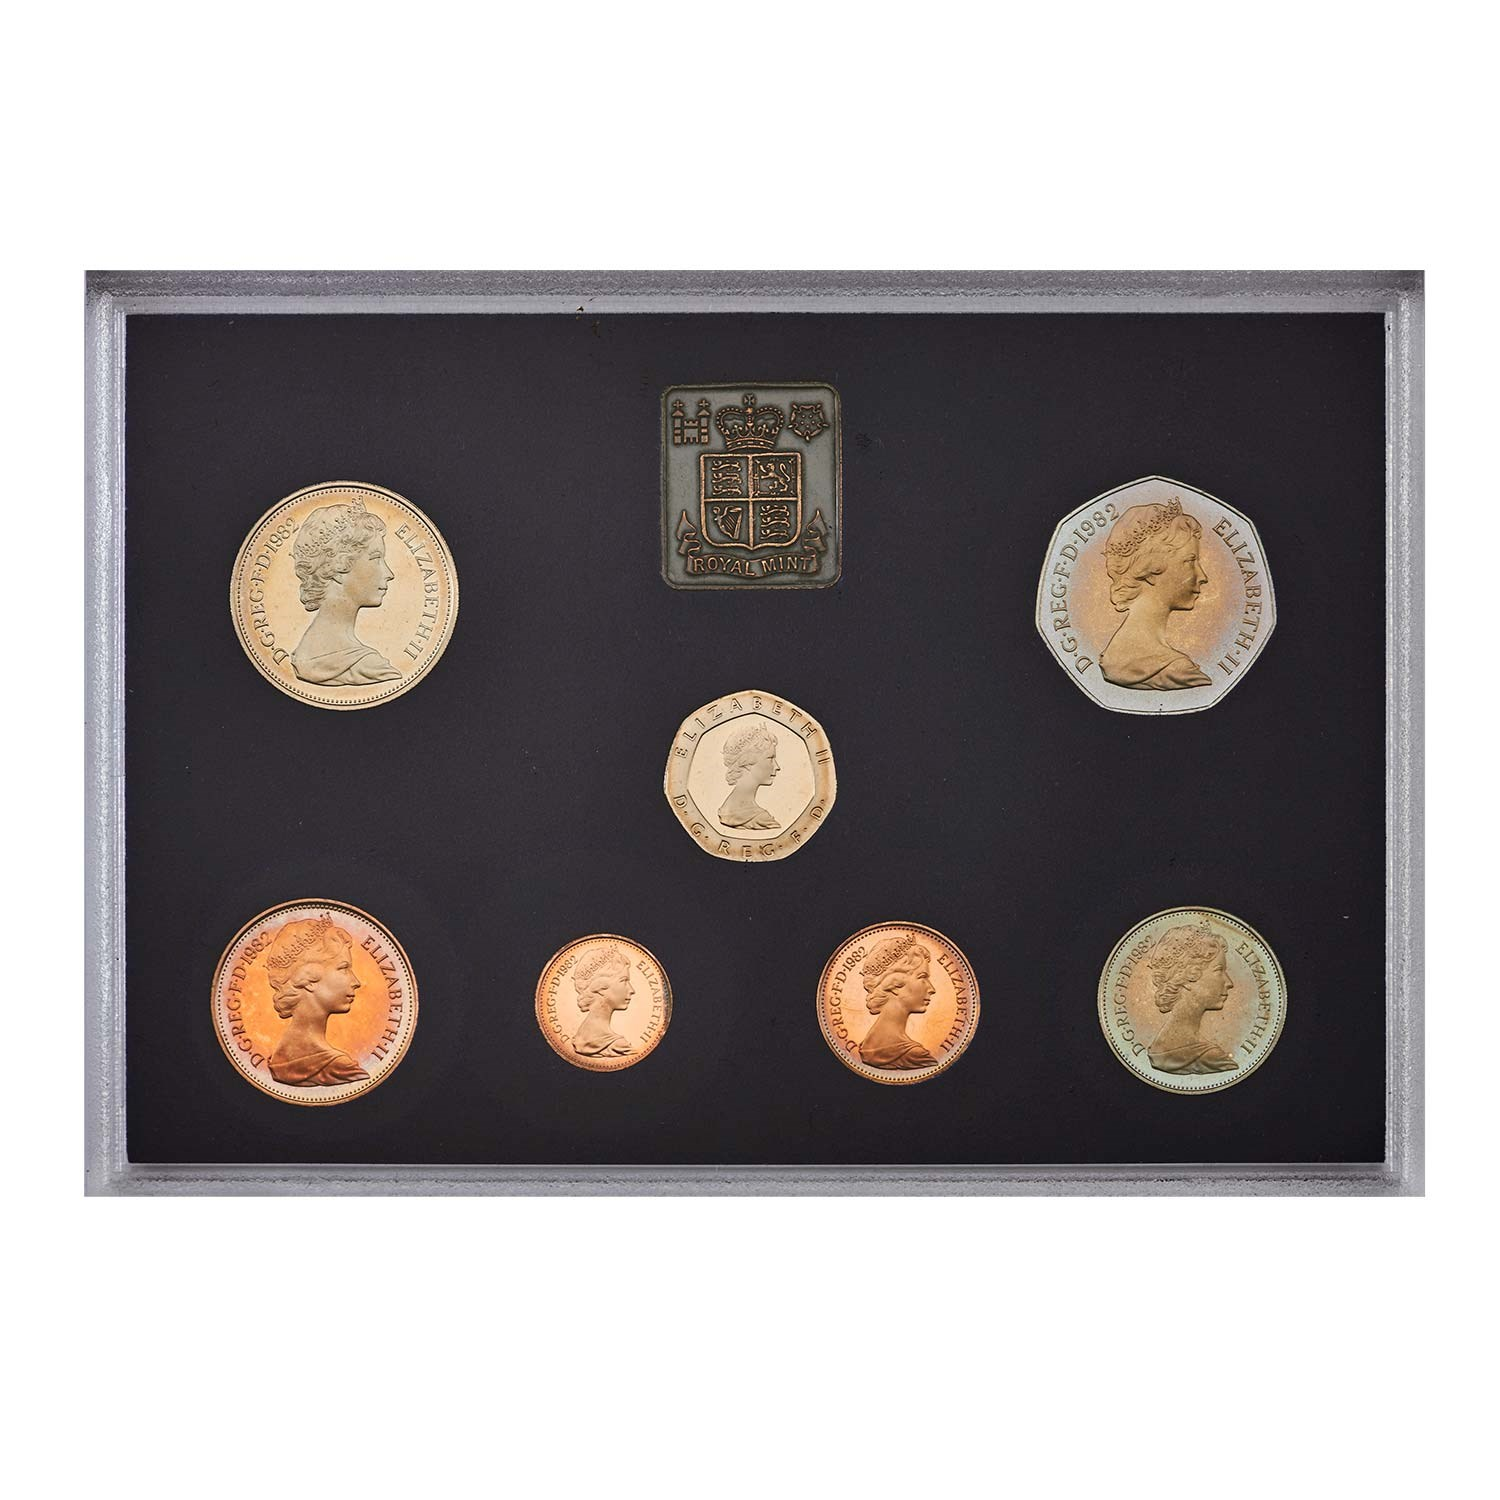 1982 United Kingdom Annual Proof Coin Set